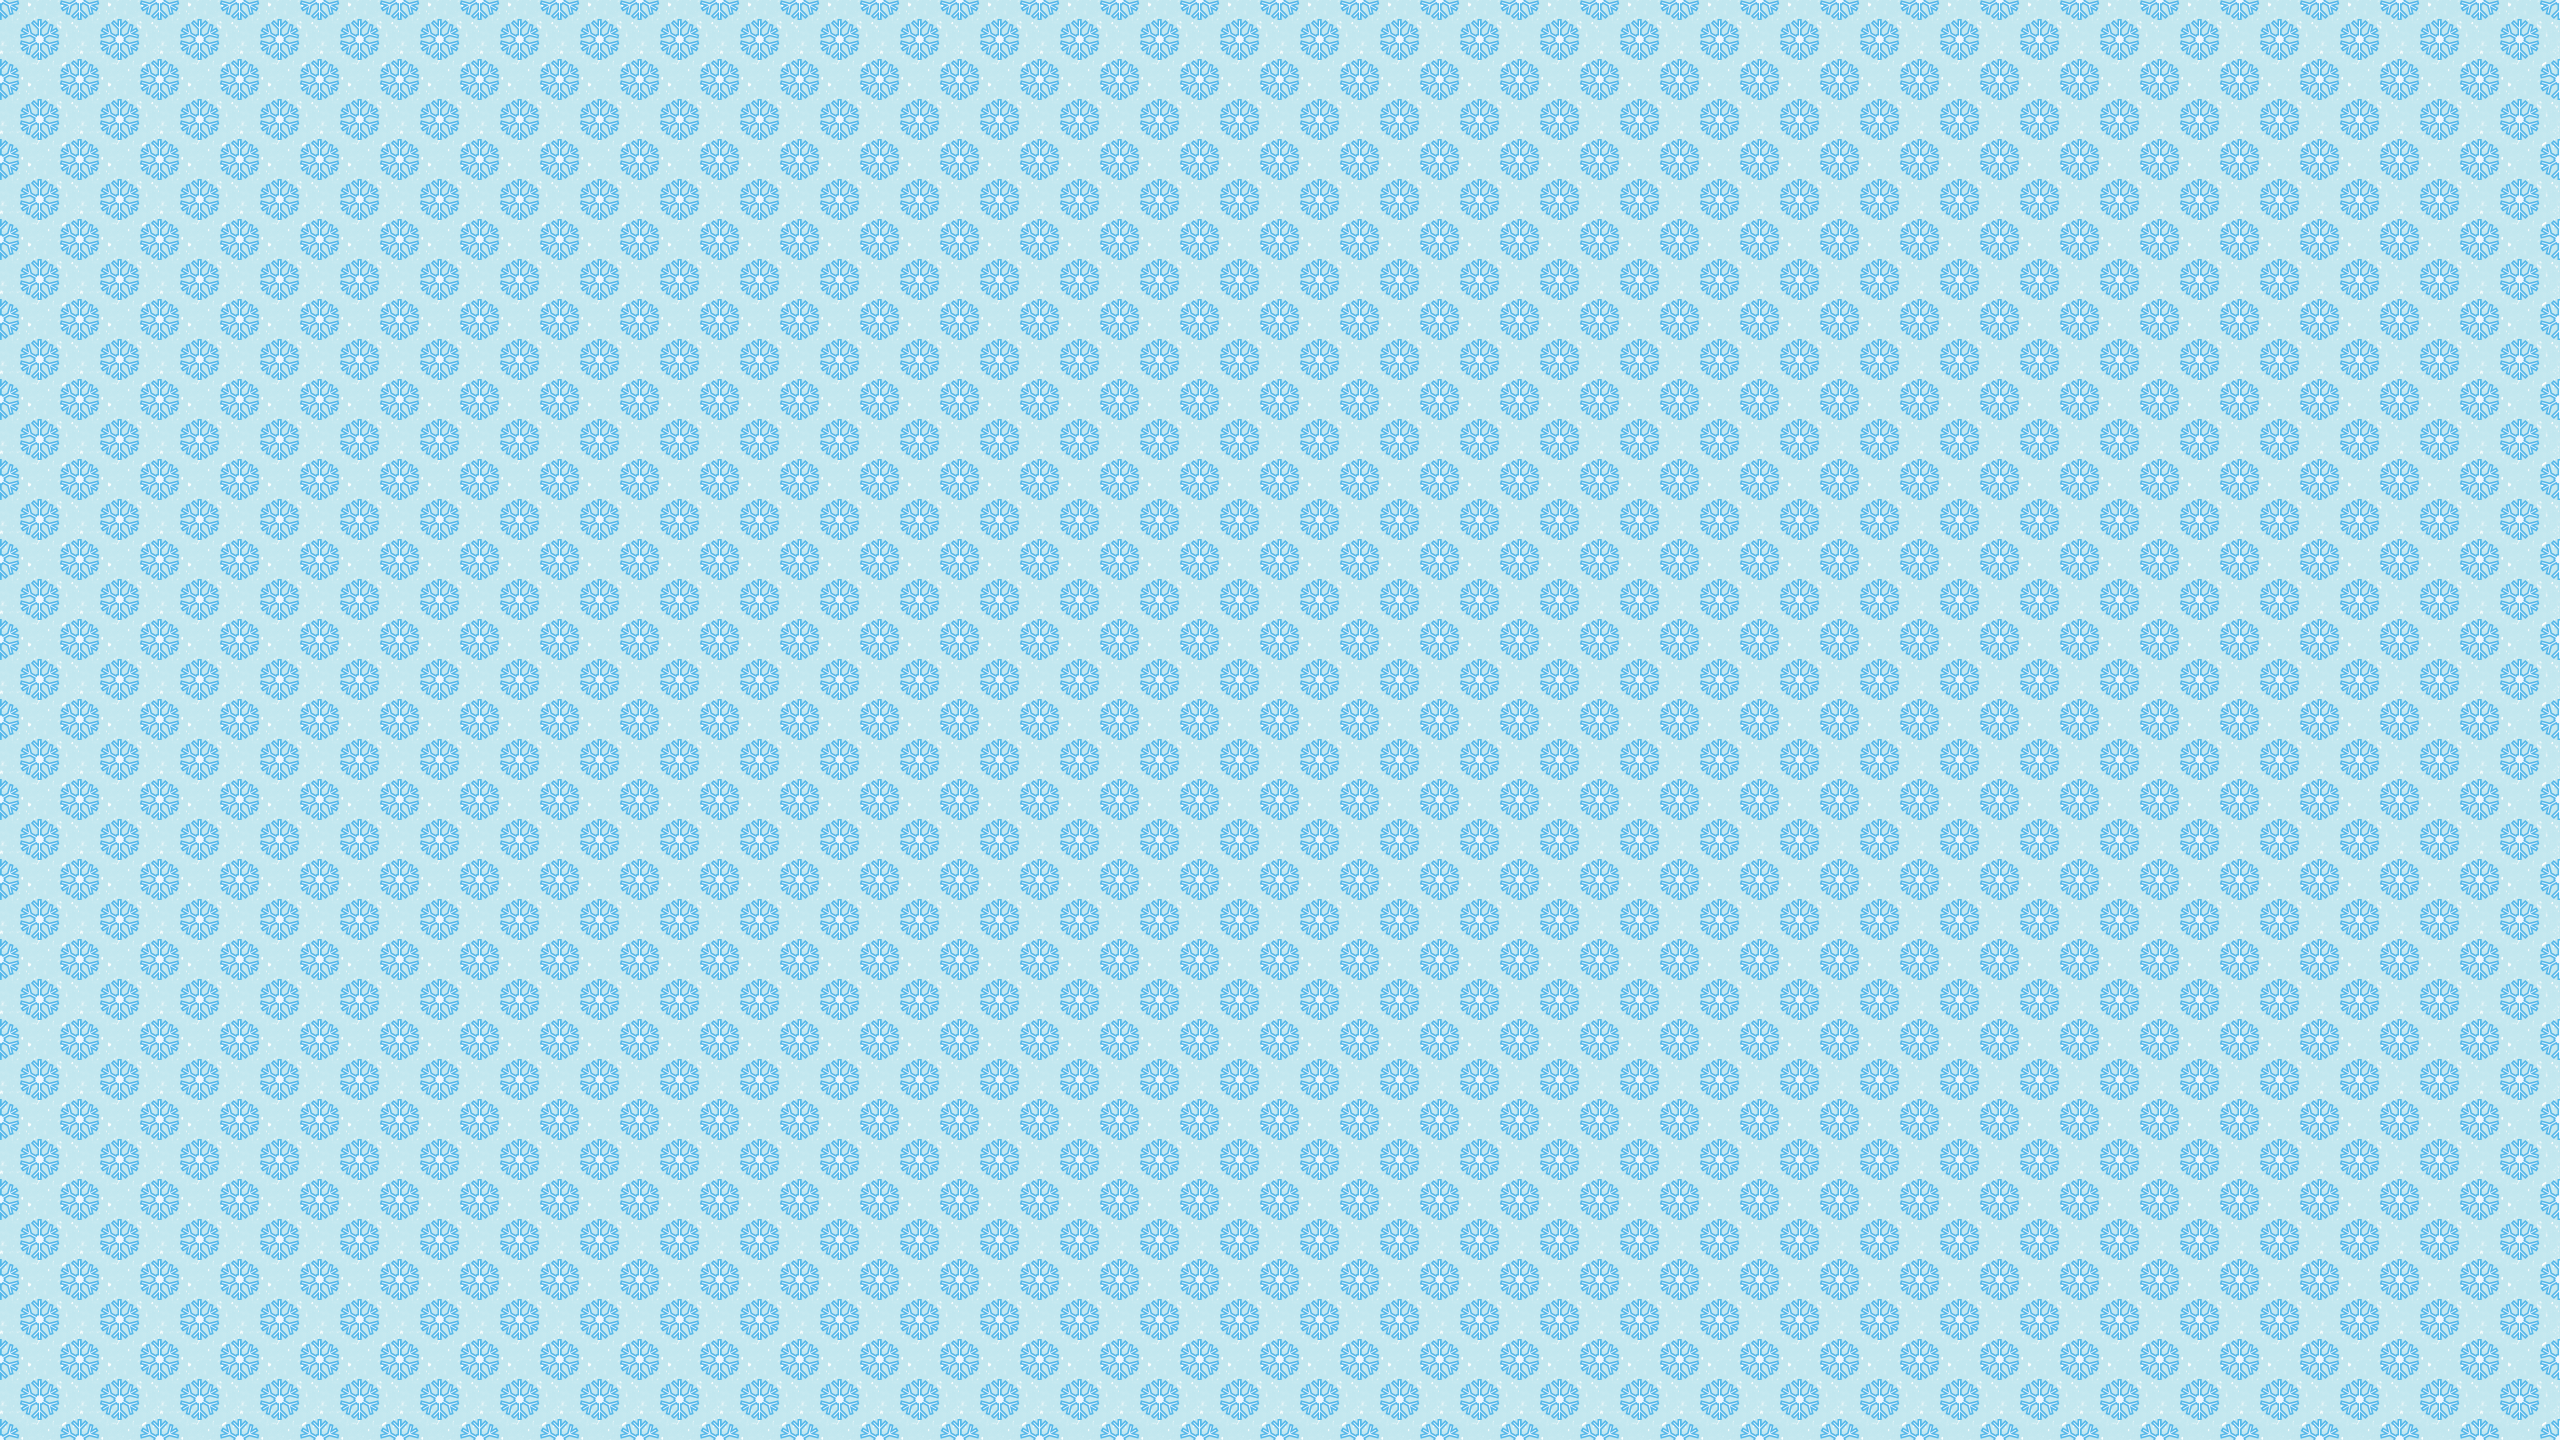 Wallpapers Blue Cute Wallpaper Cave Png 2560x1440 Tumblr Pattern Pictures